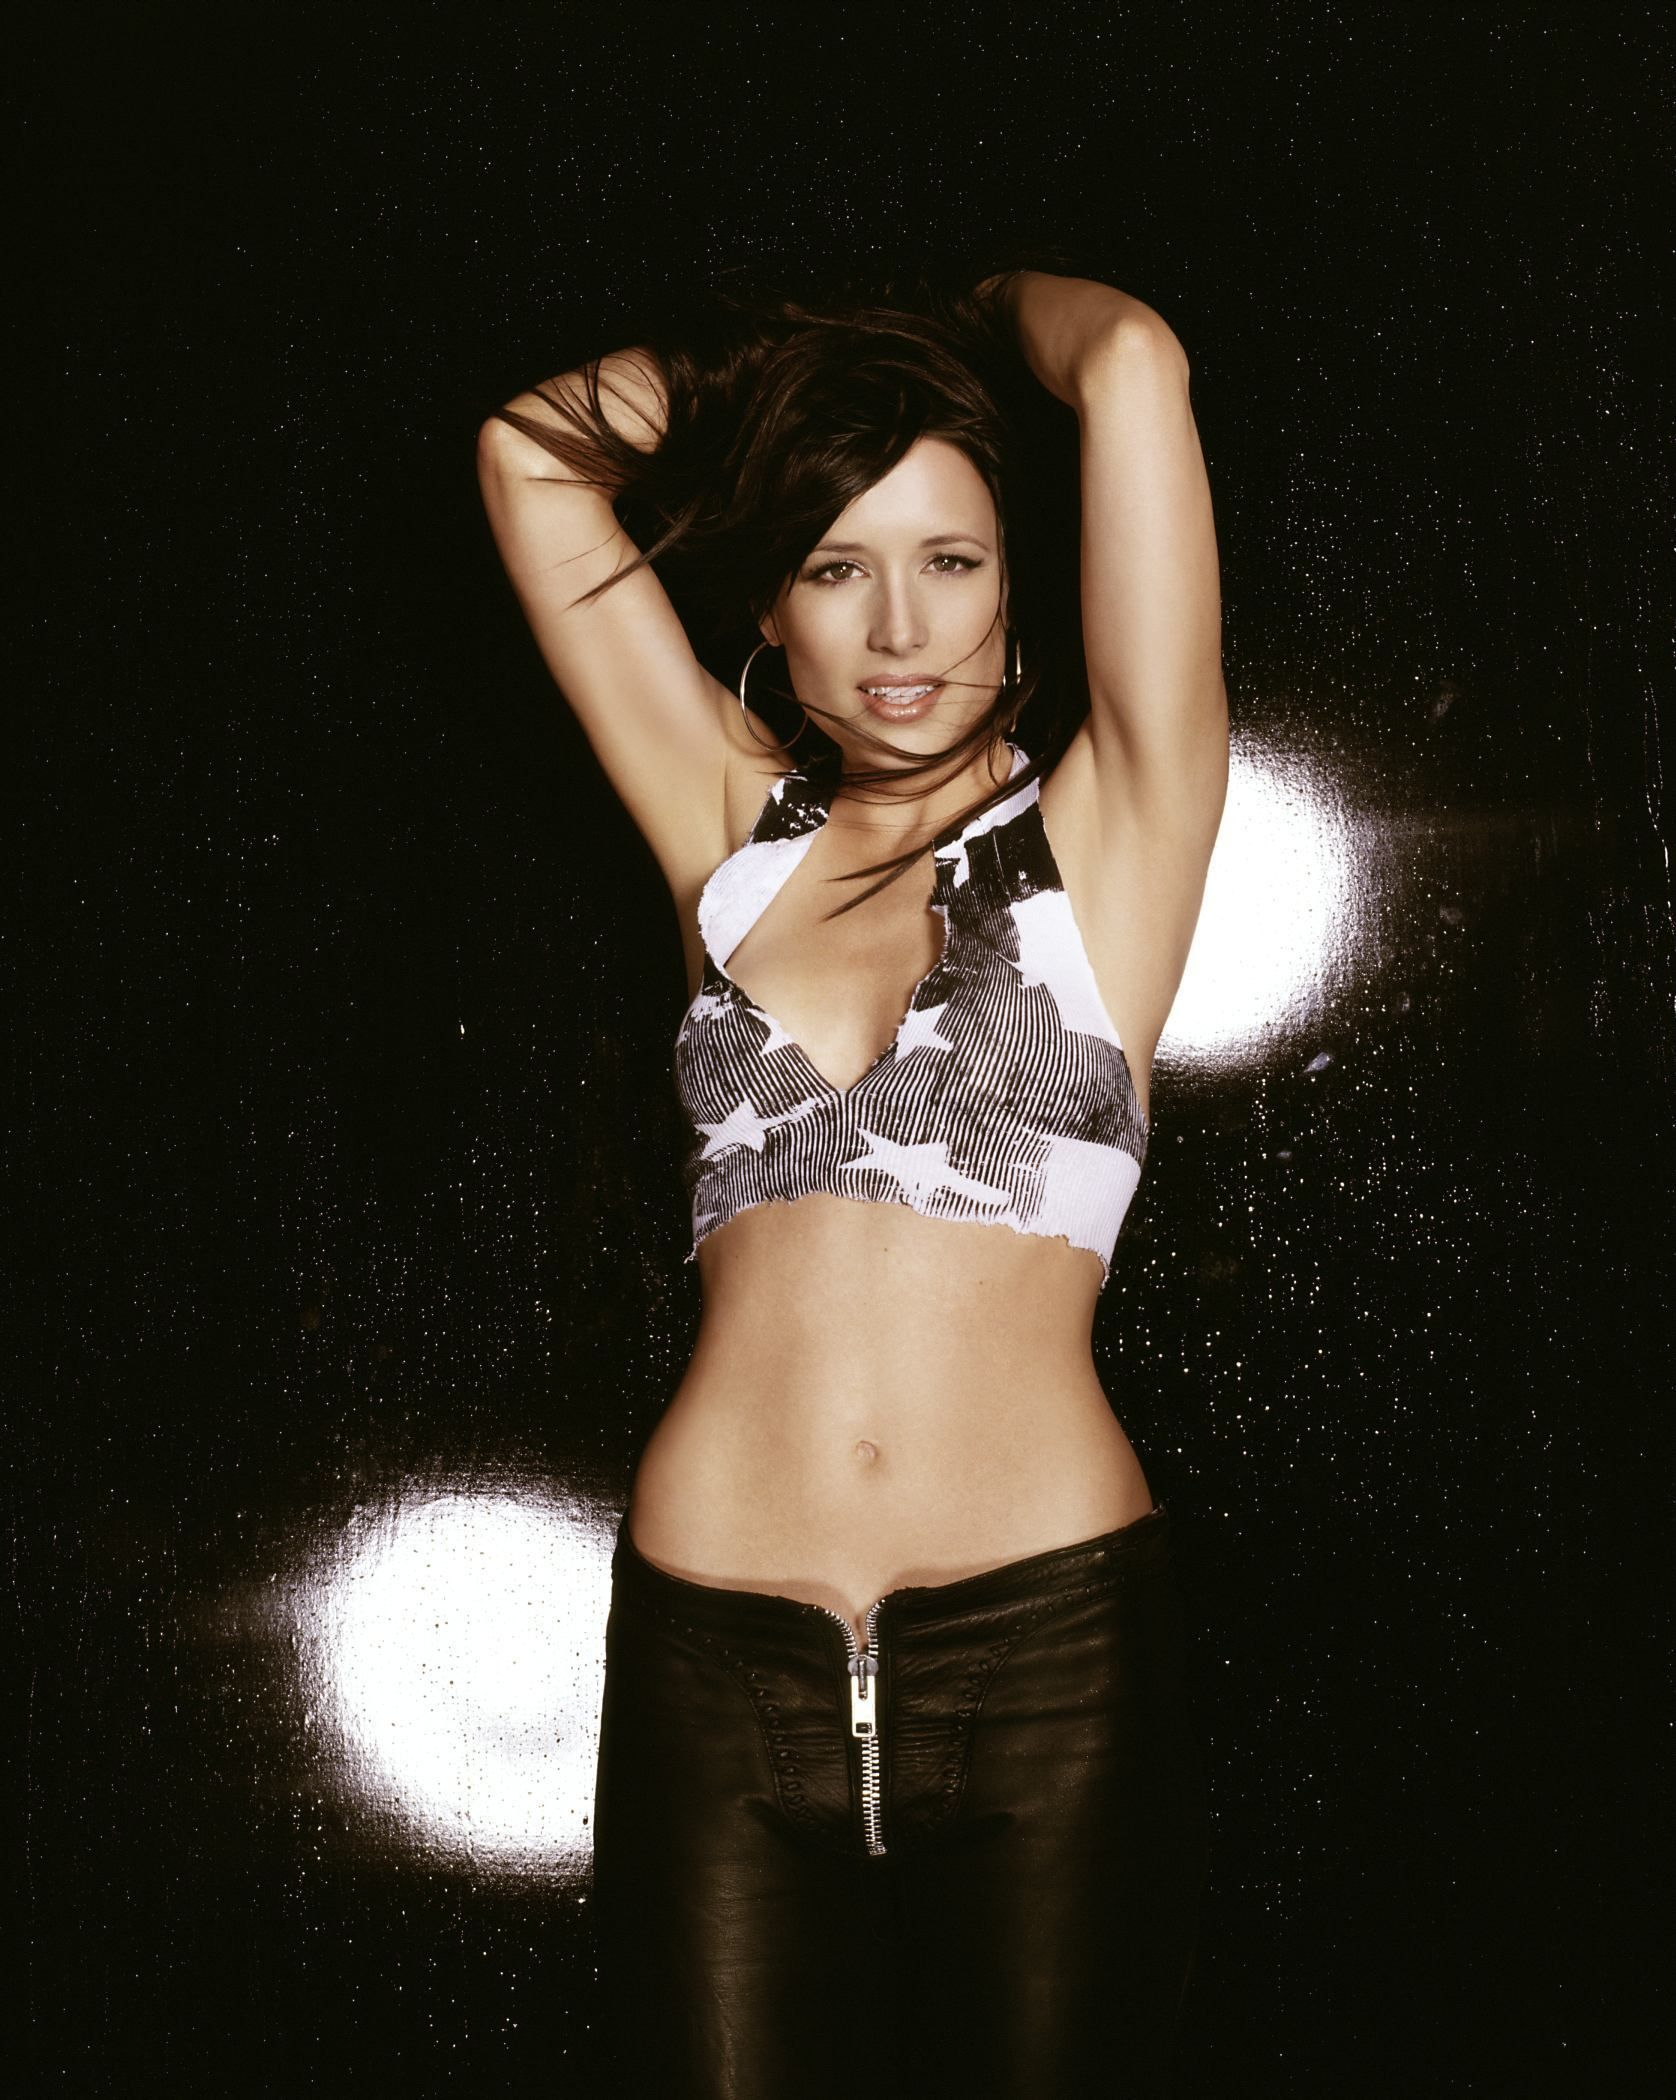 Used Cars Shawnee Ks shawnee smith | Shawnee Smith - Shawnee Smith Photo (8465259) - Fanpop ...